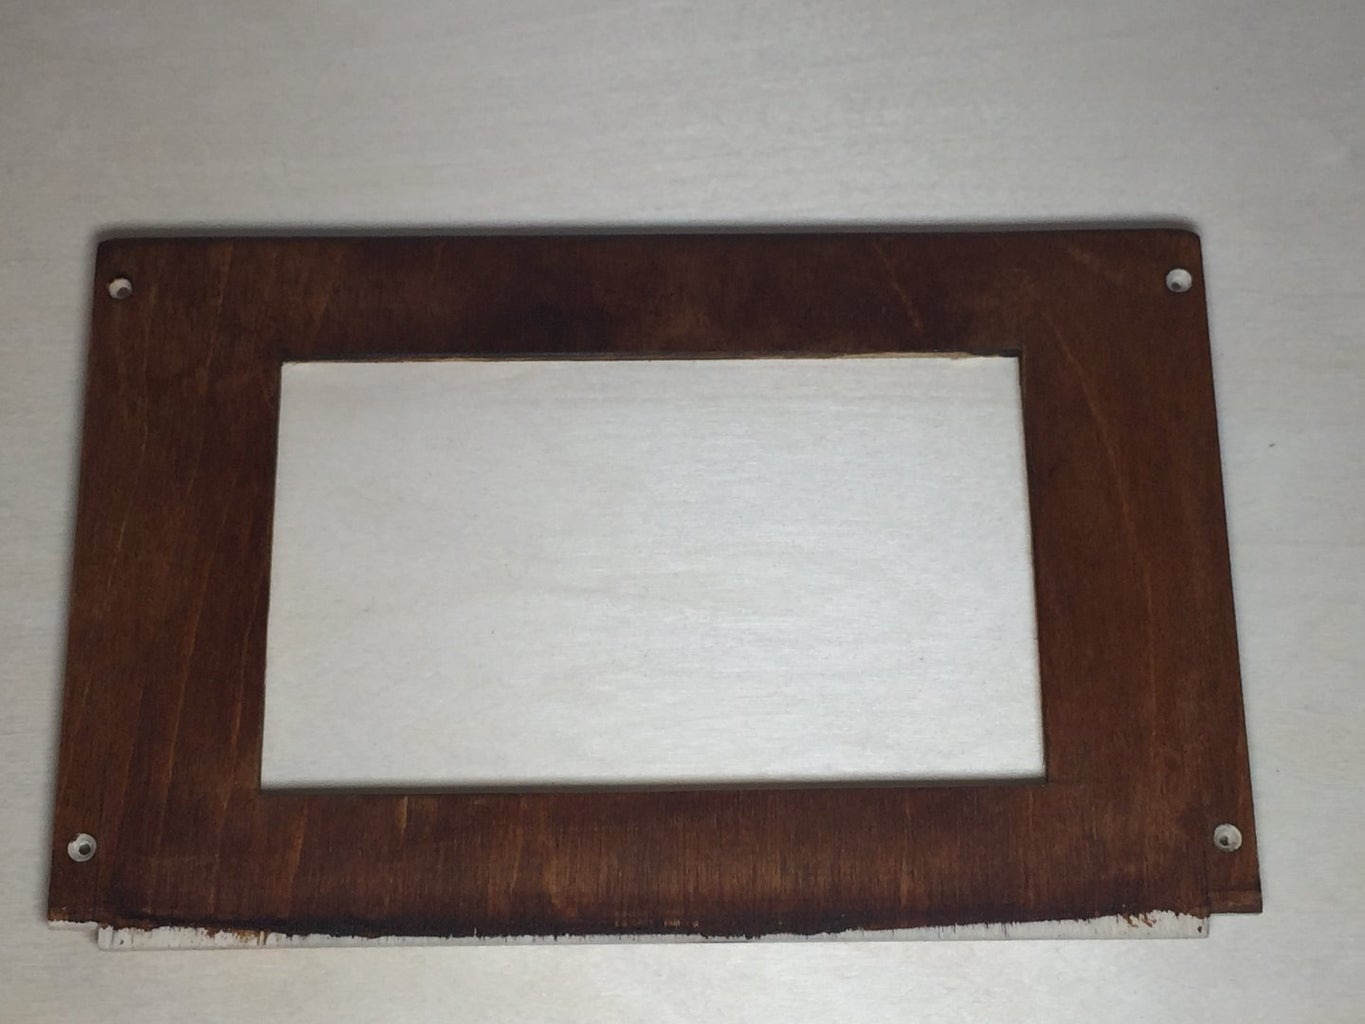 Prepare the Raspberry With the Display and Mount It Into the Front Panel